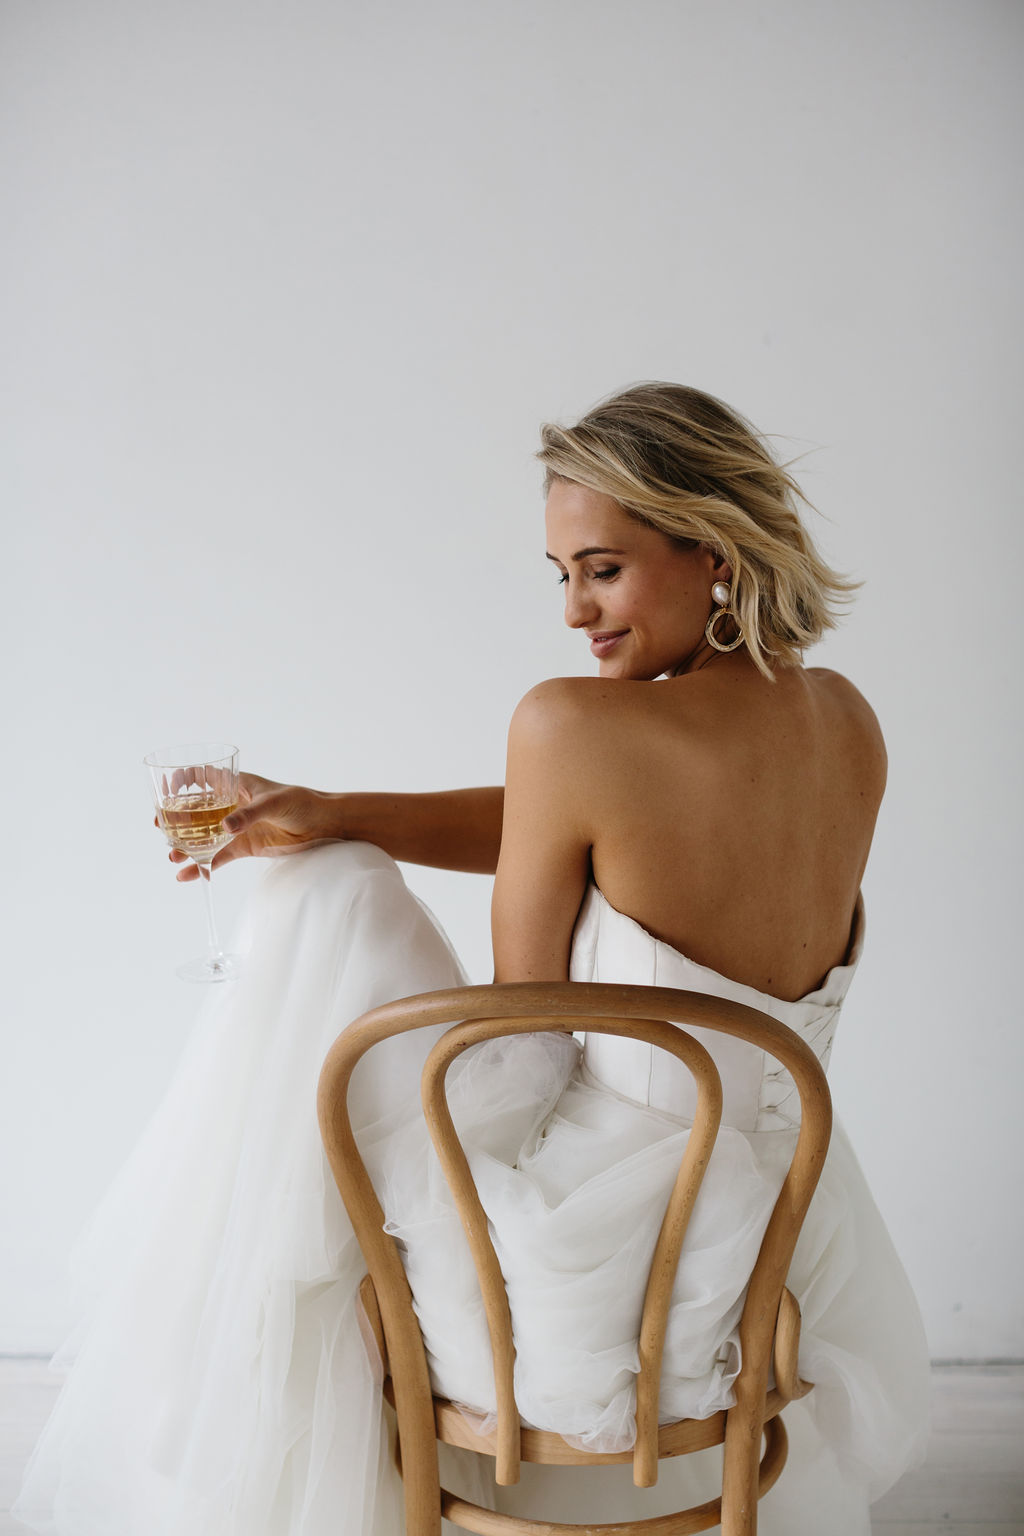 Backless Wedding Dress on bride in chair drinking champagne before wedding in large modern gold pearl earrings for Amelie George Campaign